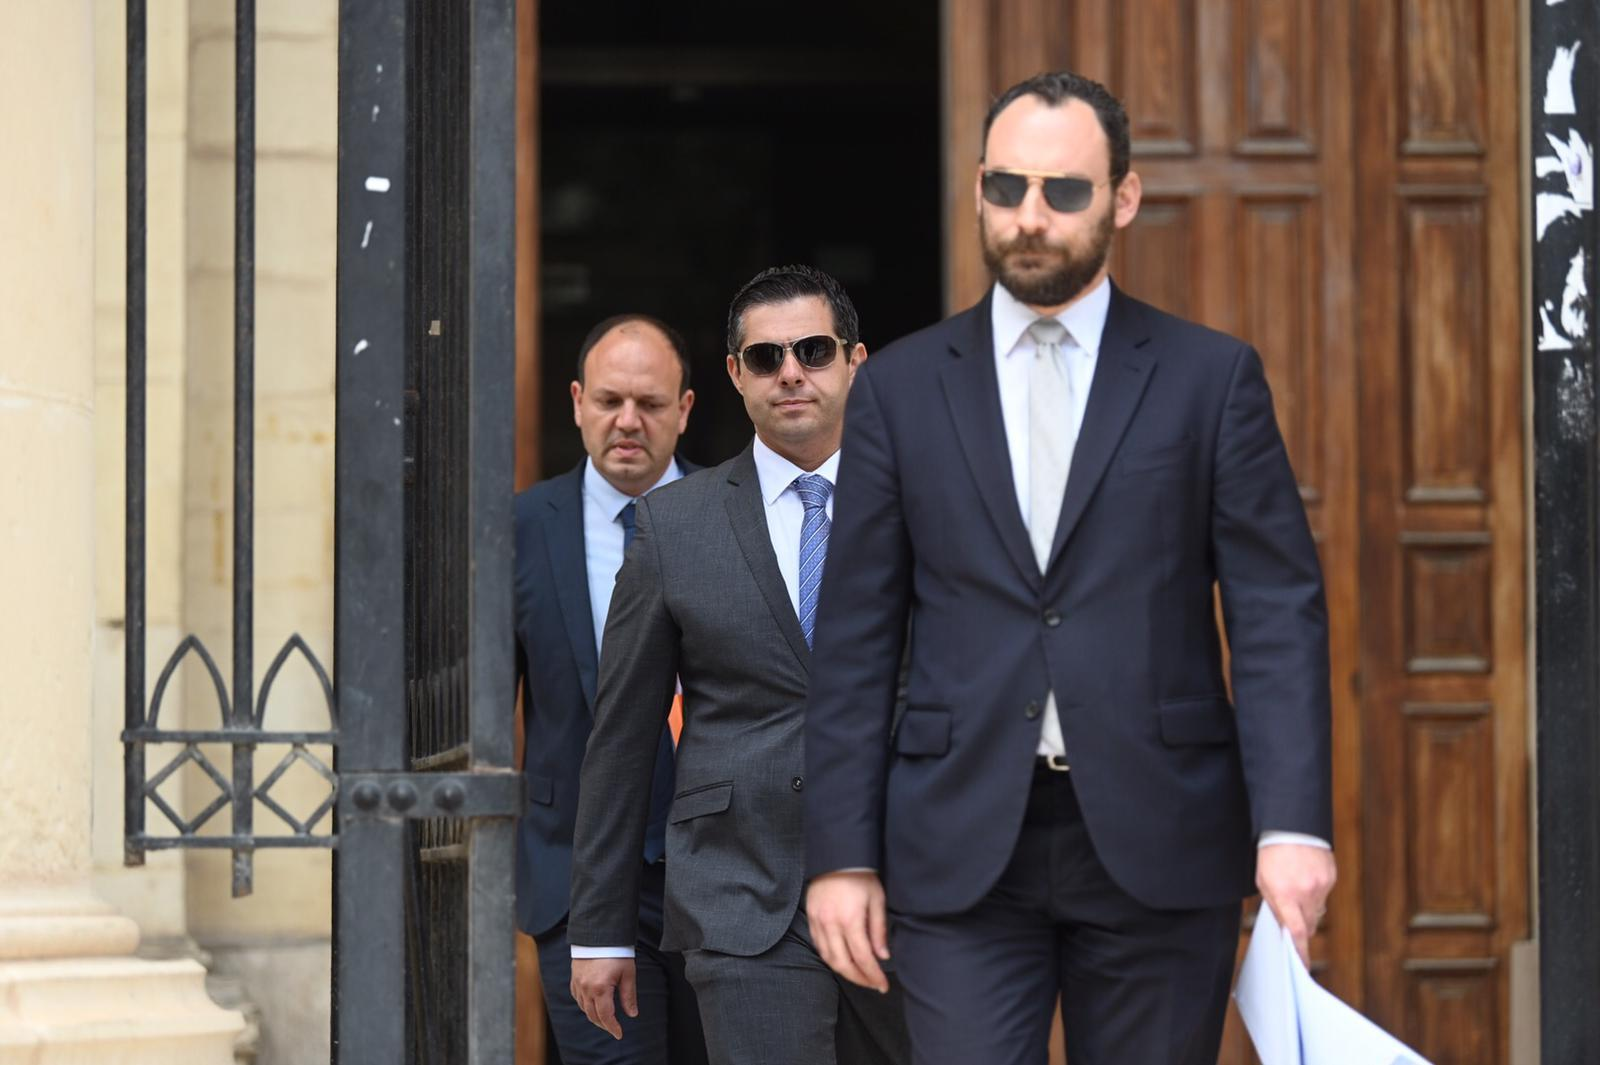 Architect Roderick Camilleri, left, leaves court with lawyers Alfred Abela and Arthur Azzopardi. Photo: Mark Zammit Cordina